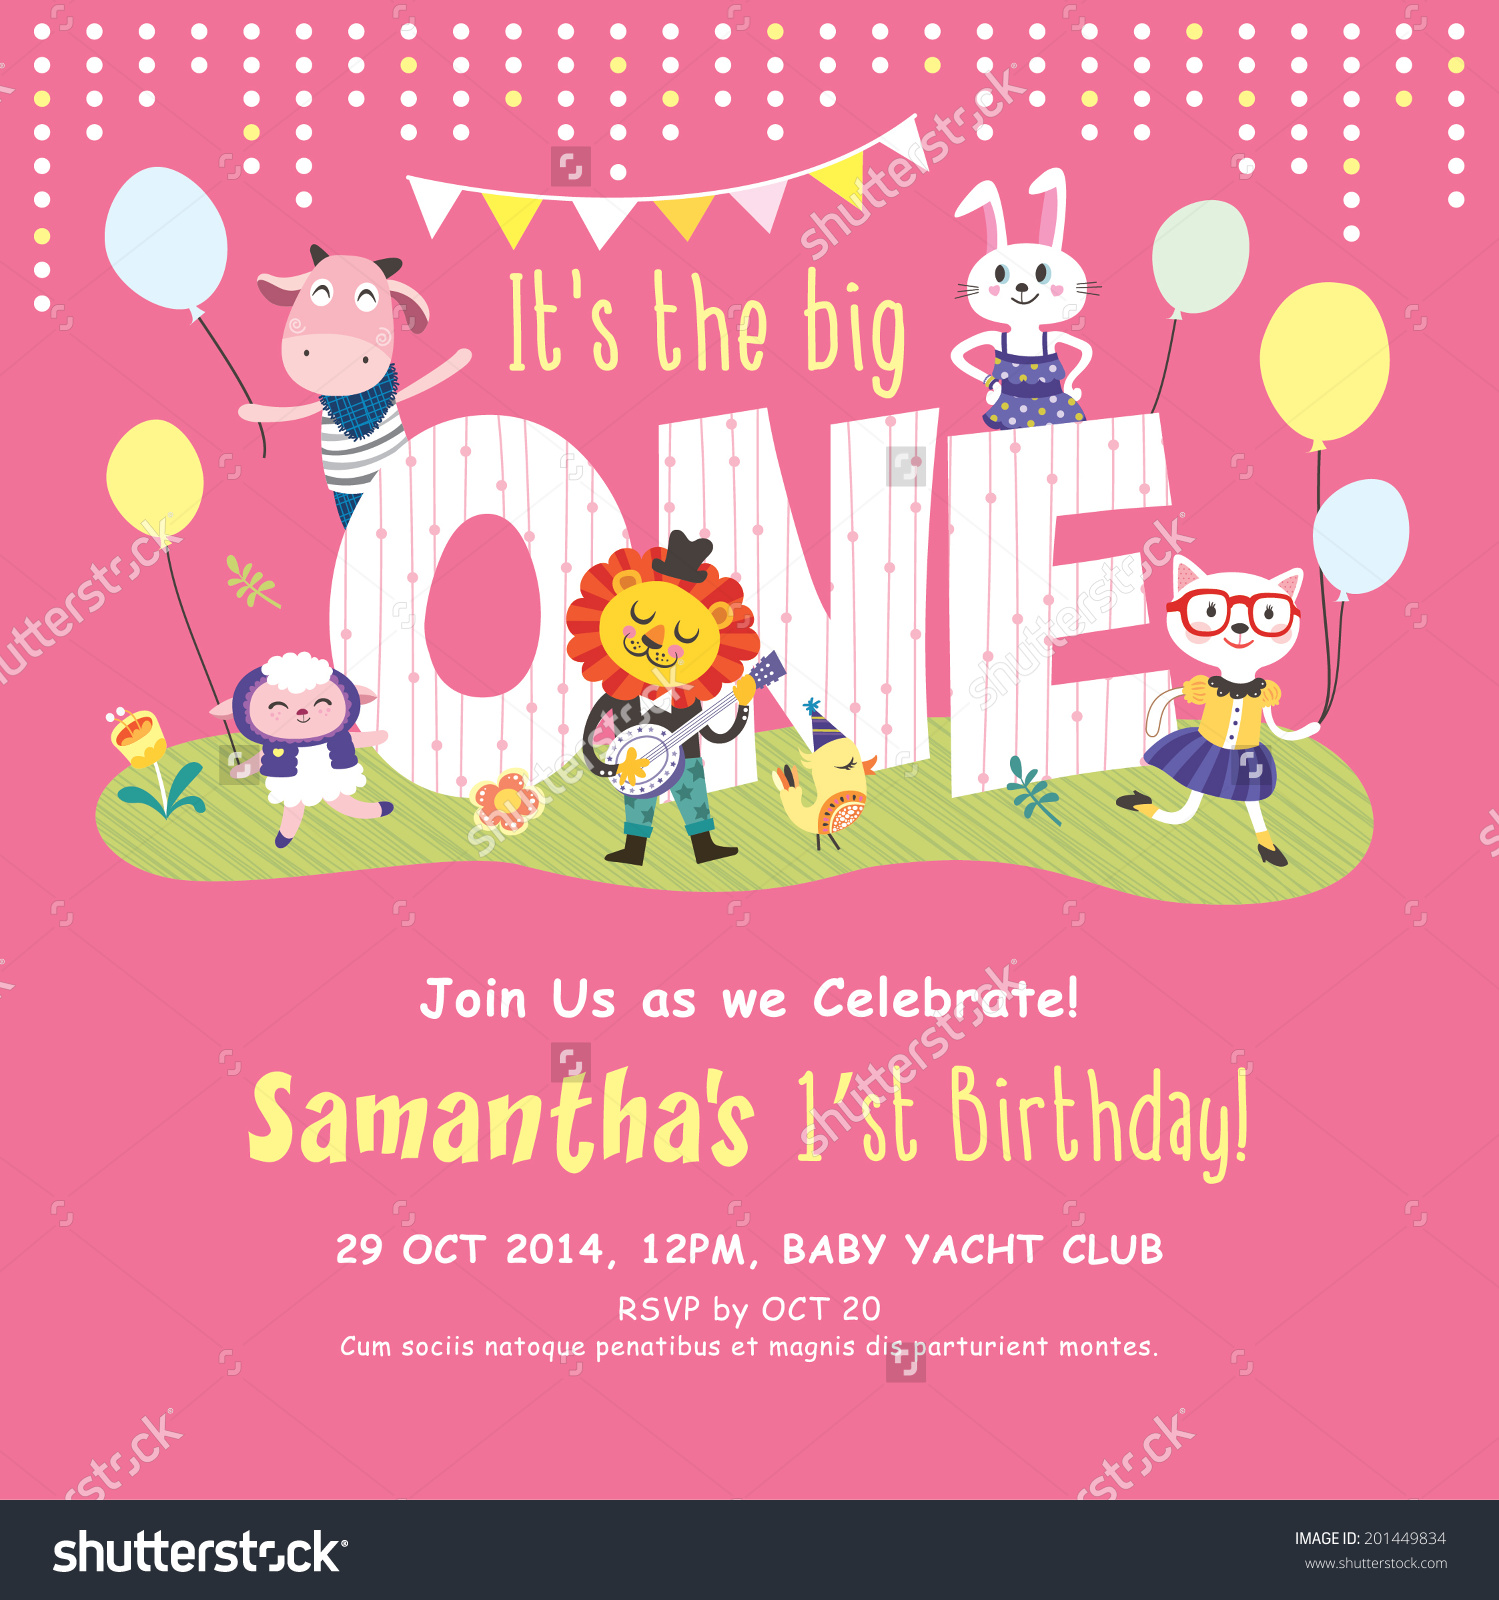 invitation card design for birthday party free ; Amusing-Free-Invitation-Cards-For-Birthday-Party-65-In-Invitation-Cards-Border-Designs-with-Free-Invitation-Cards-For-Birthday-Party